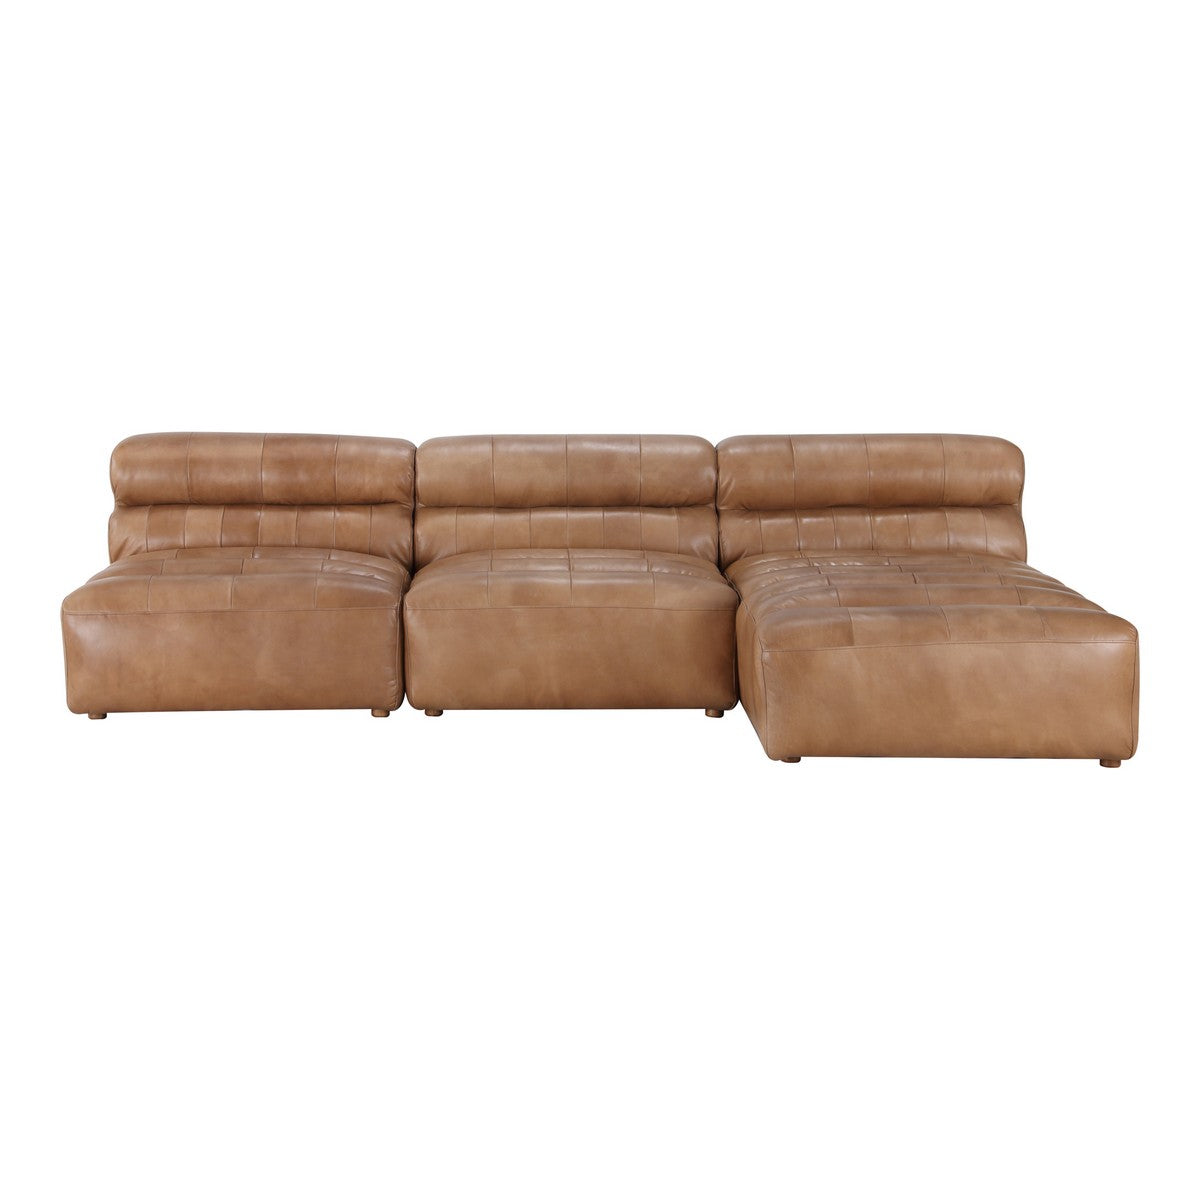 Moe's Home Collection Ramsay Signature Modular Sectional Tan - QN-1018-40 - Moe's Home Collection - Extras - Minimal And Modern - 1